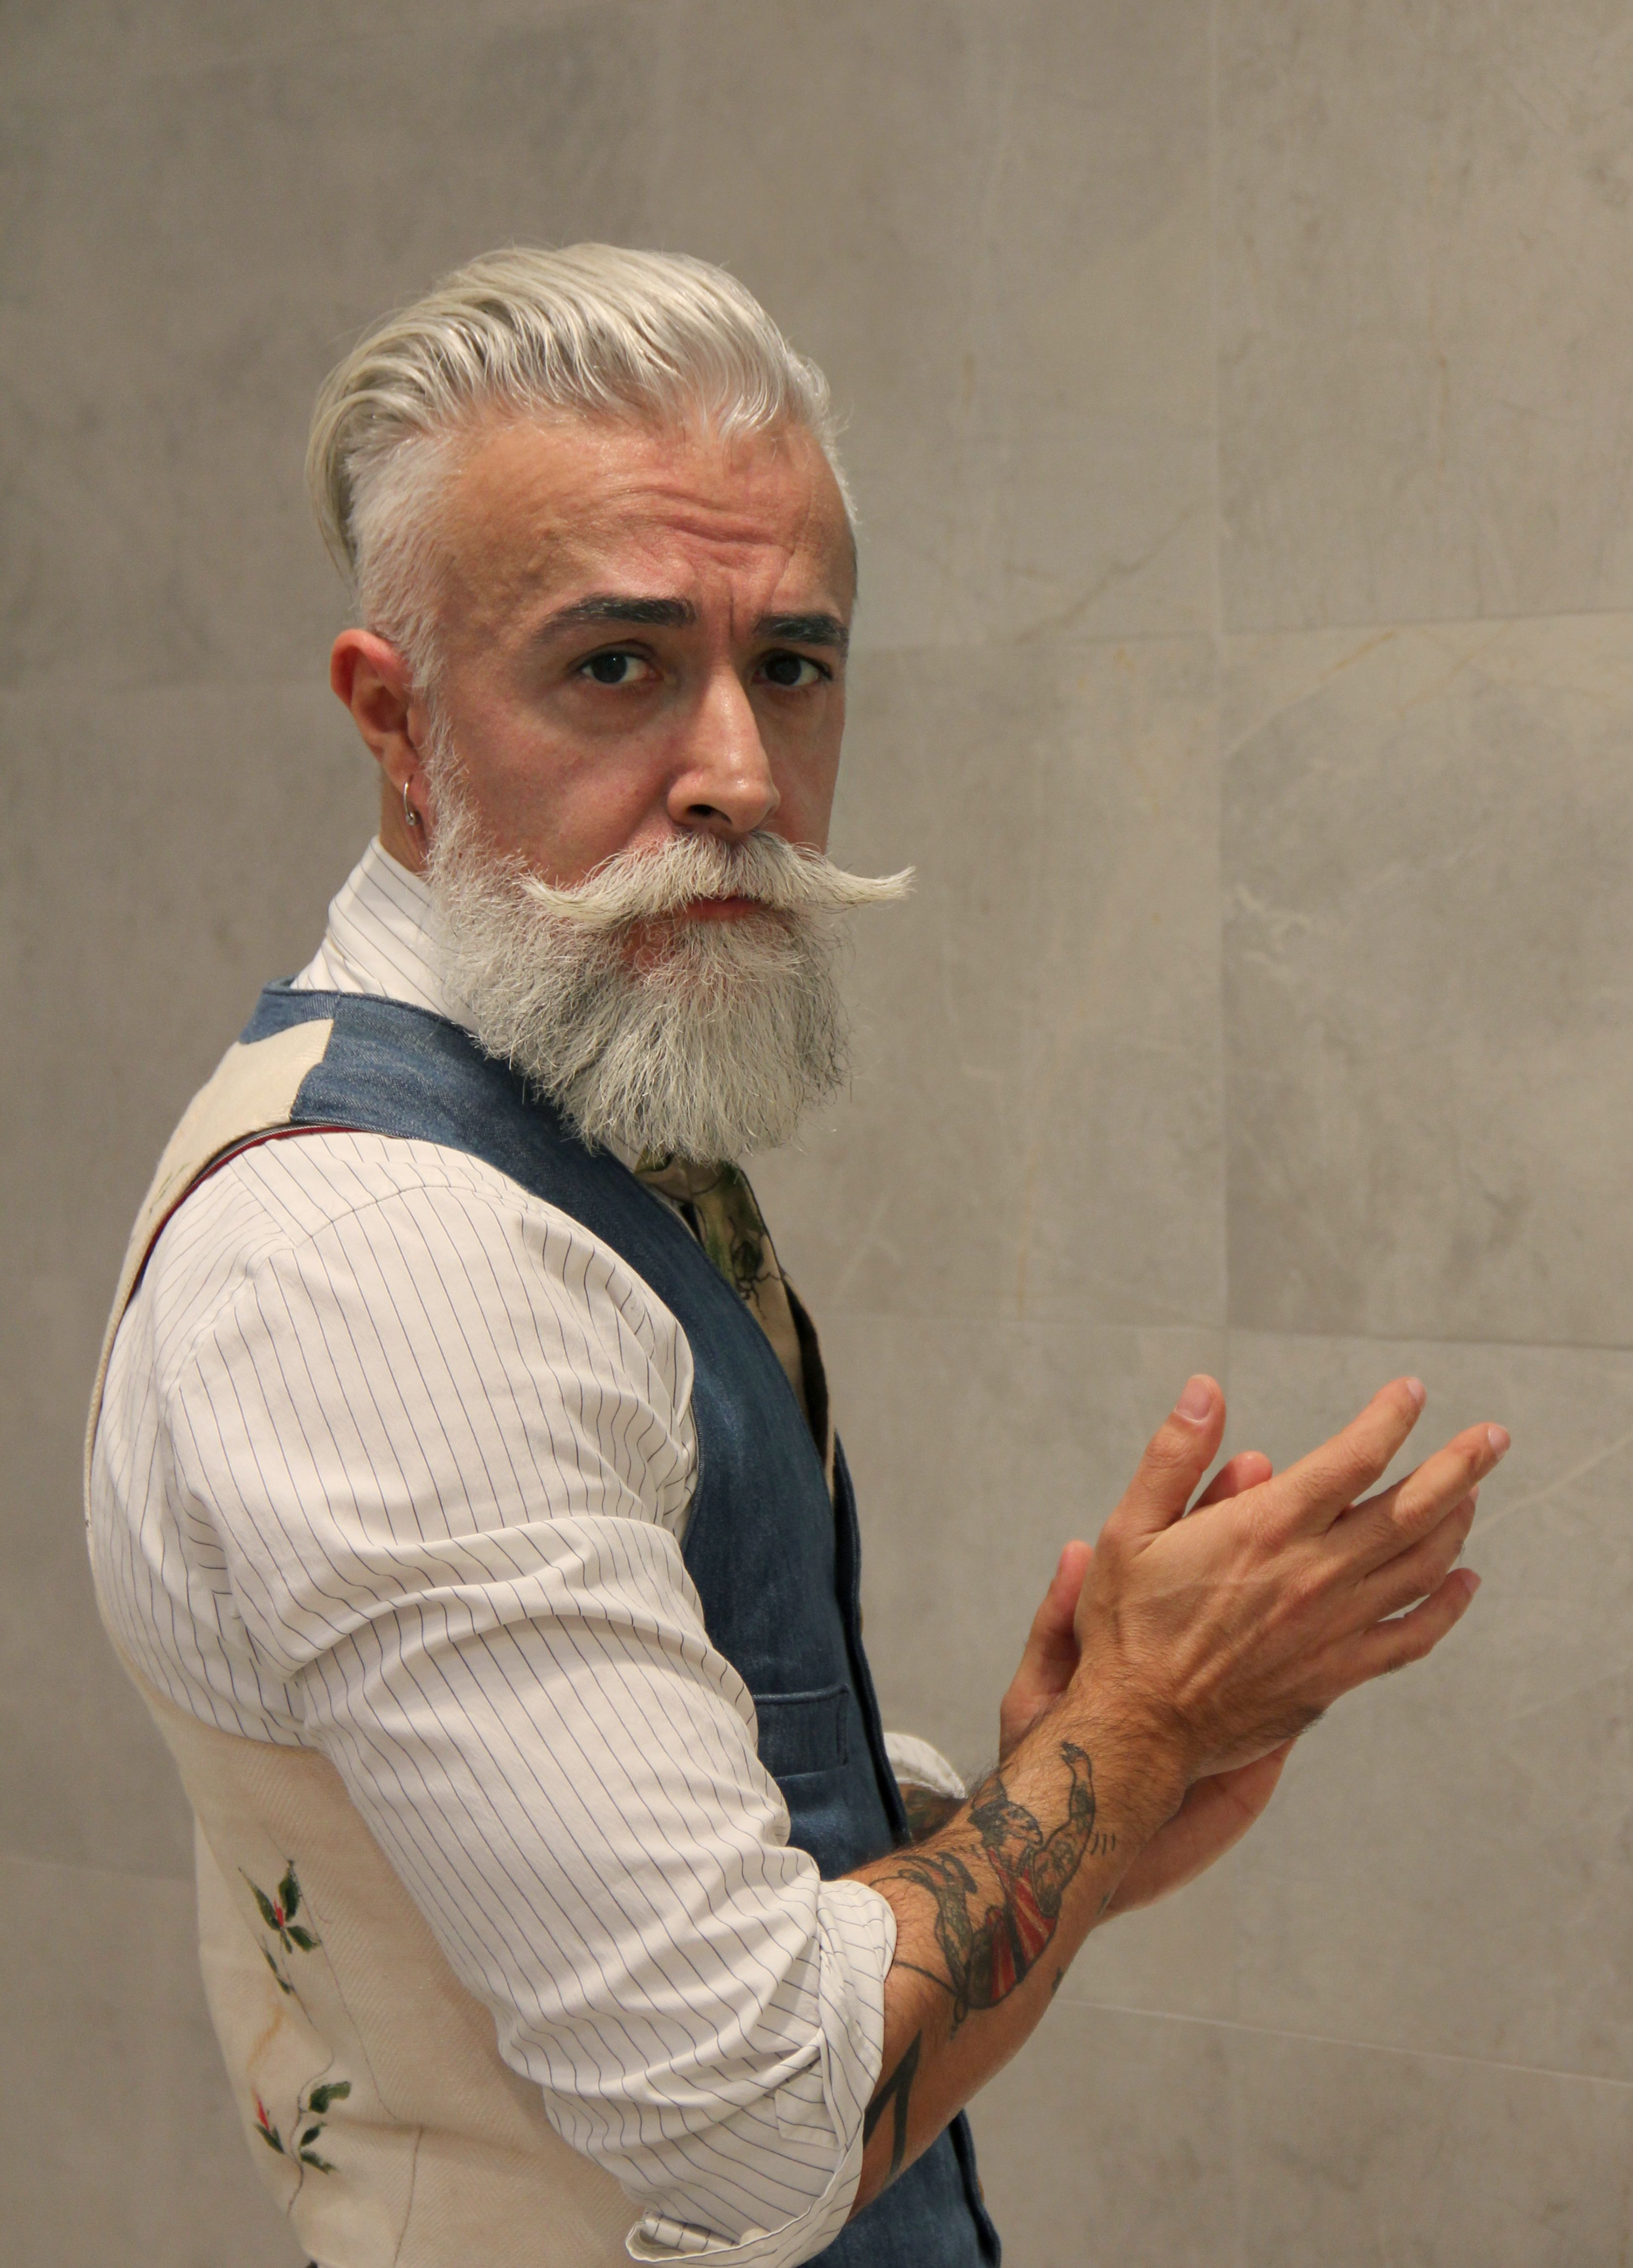 Mens haircuts widows peak alessandromanfredini waist coat with floral at the back denim front